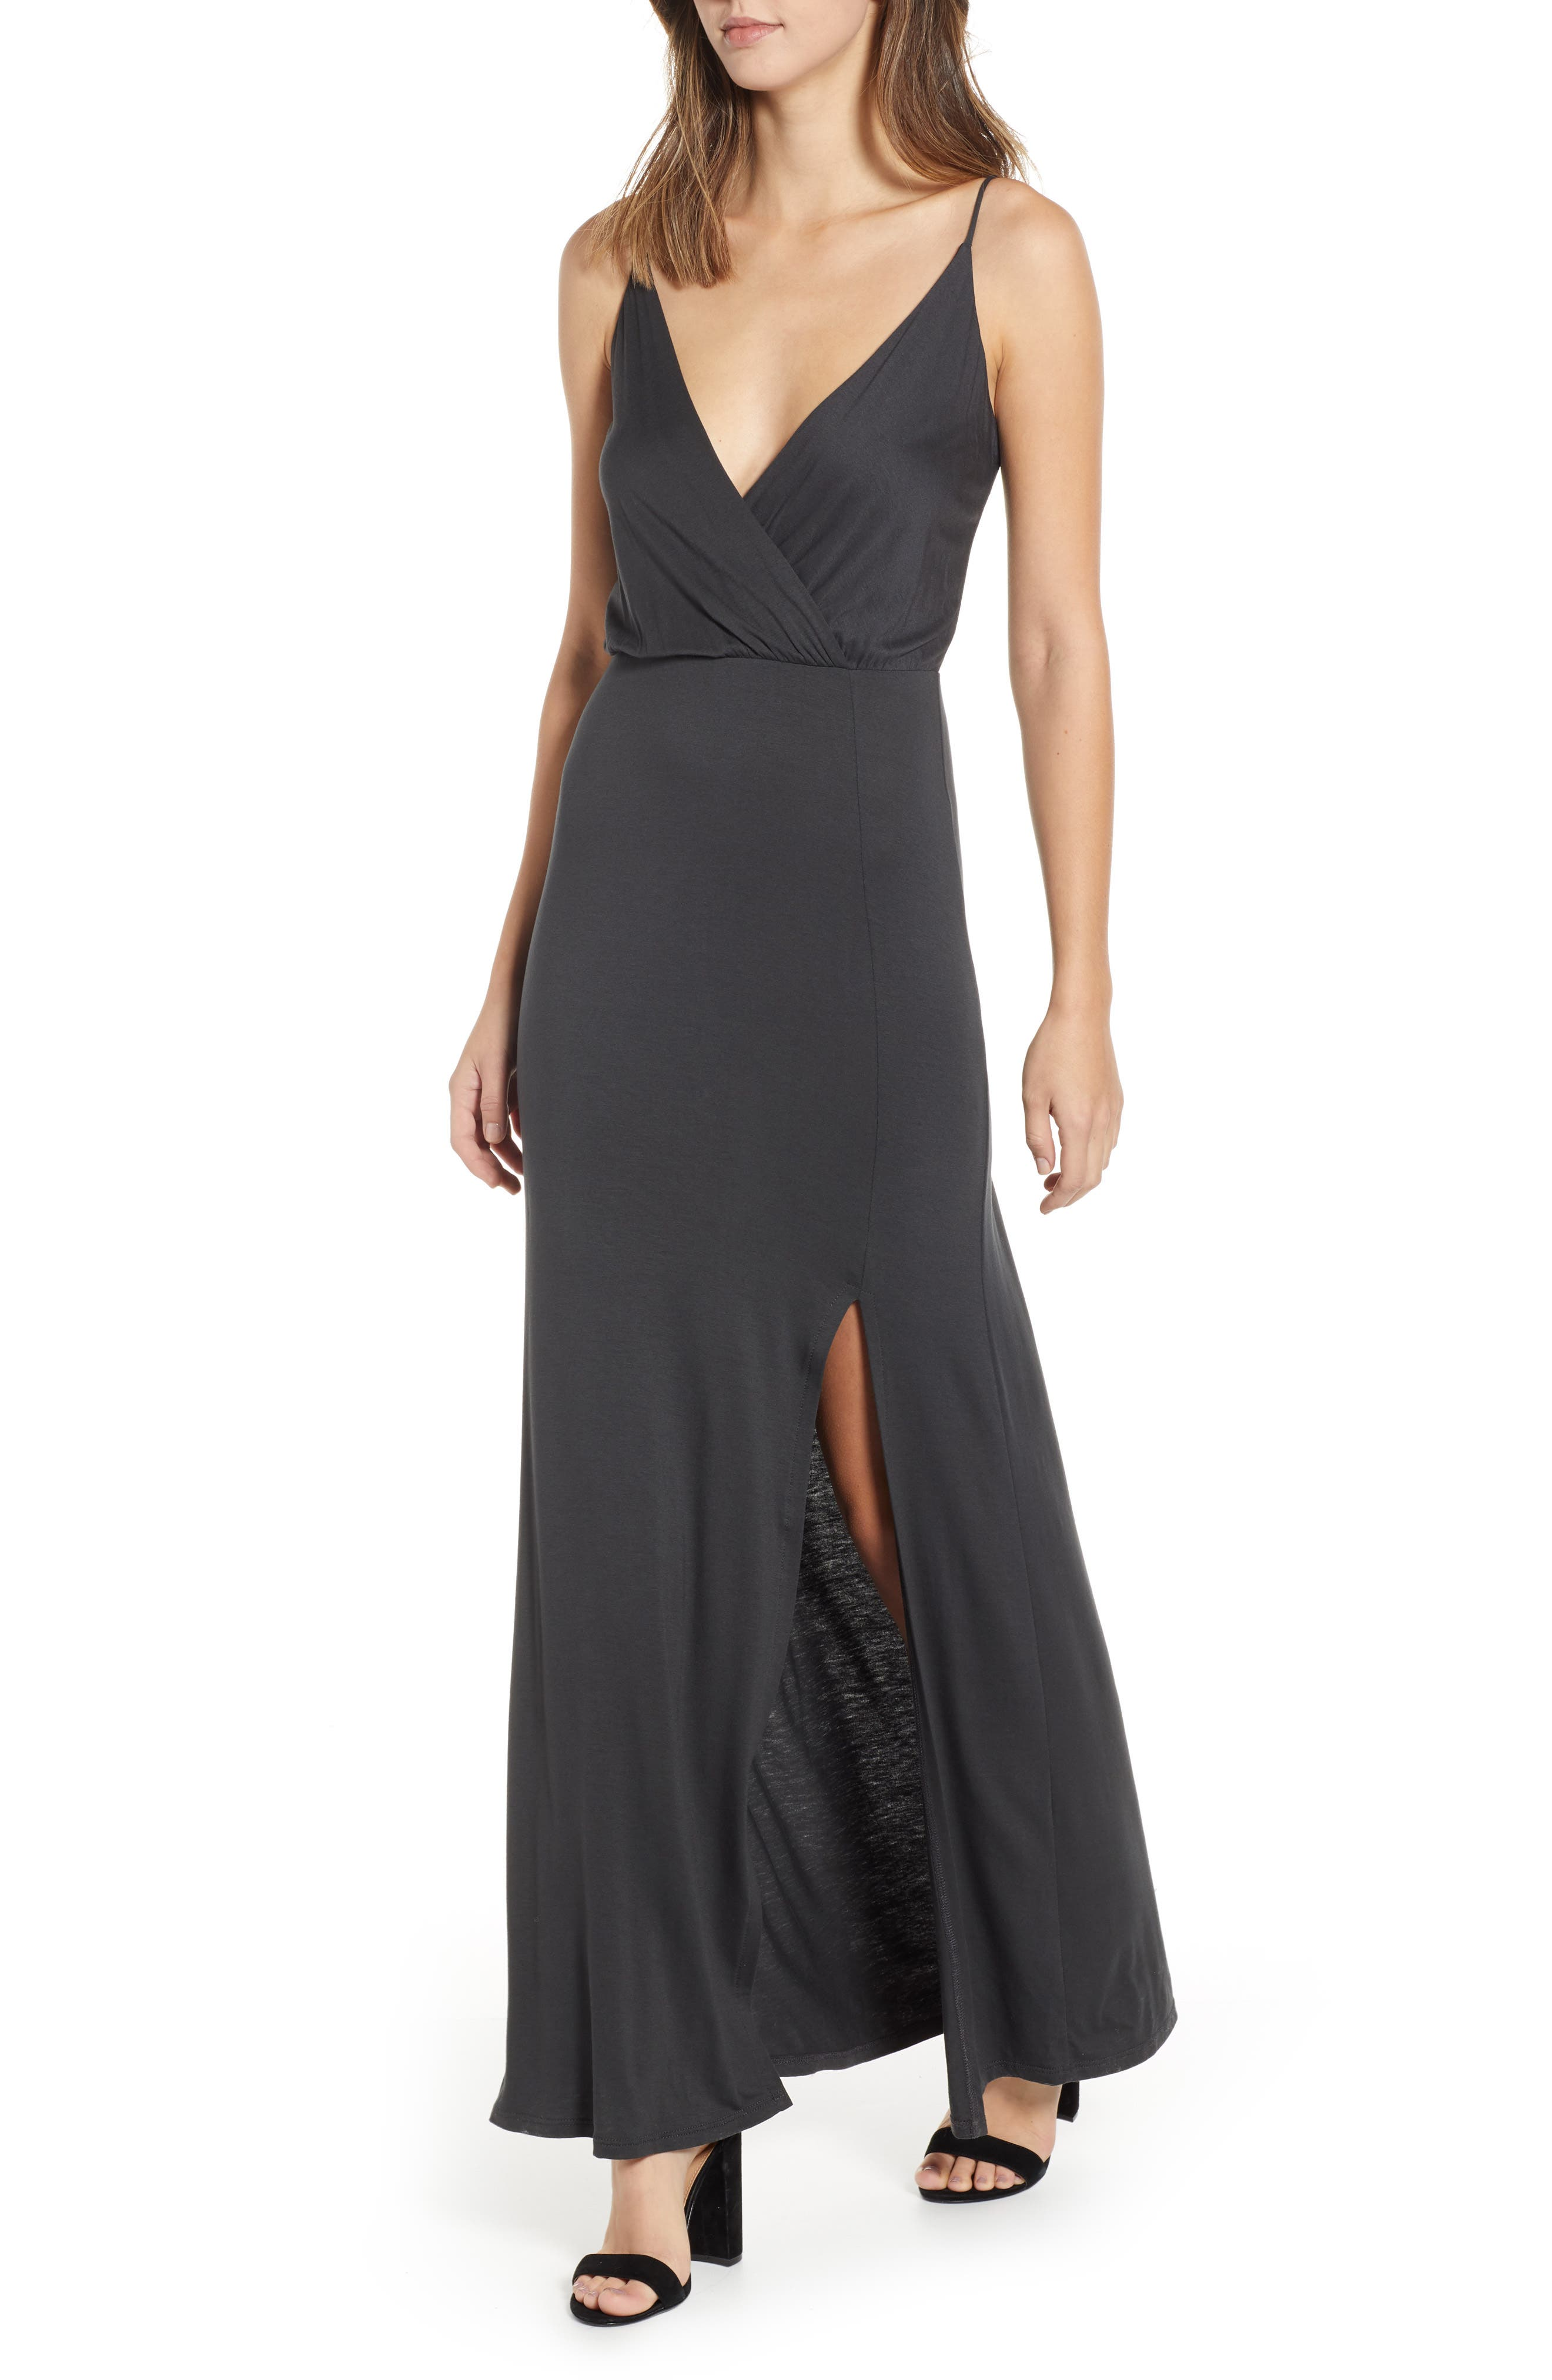 ALL IN FAVOR Surplice Neck Knit Maxi Dress, Main, color, CHARCOAL